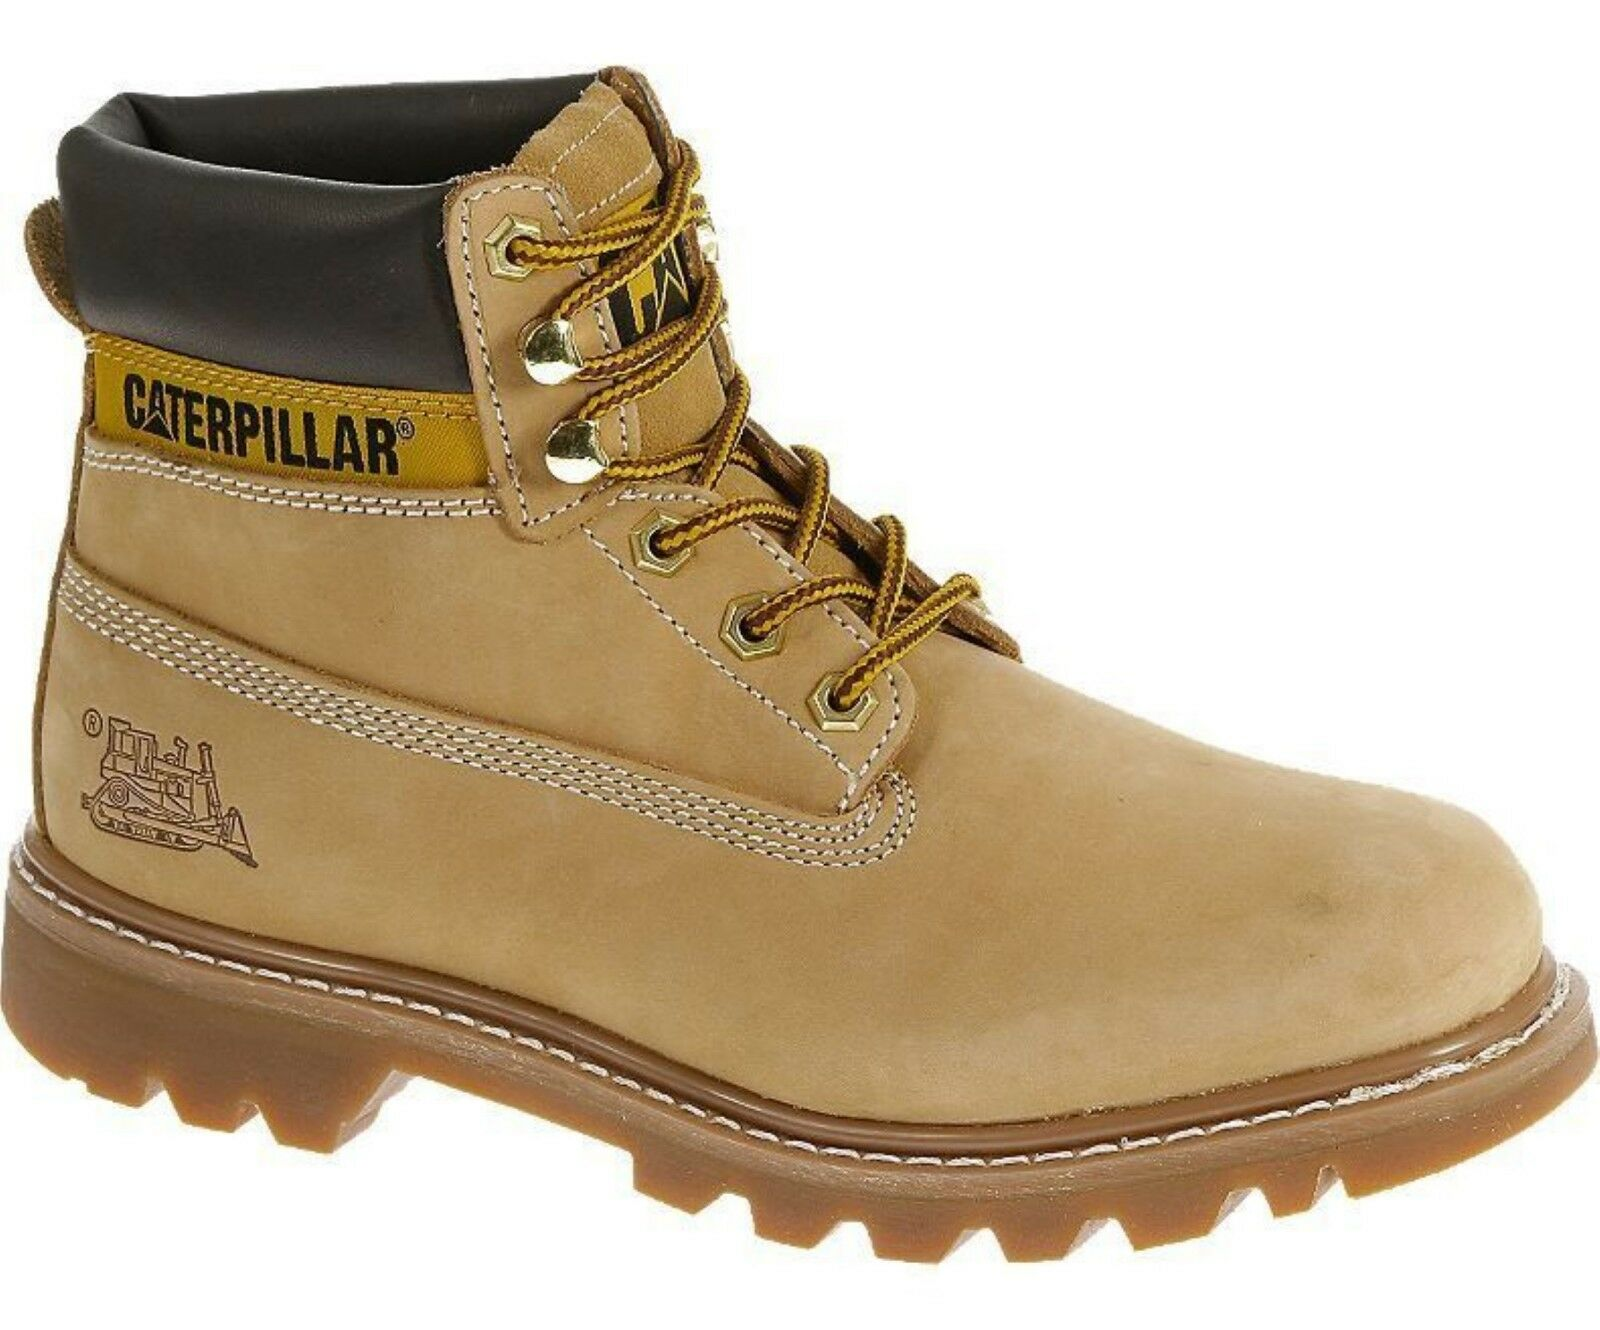 Caterpillar colorado Mens Honey Tan Nubuck Leather Upper Lace Up Ankle Boots